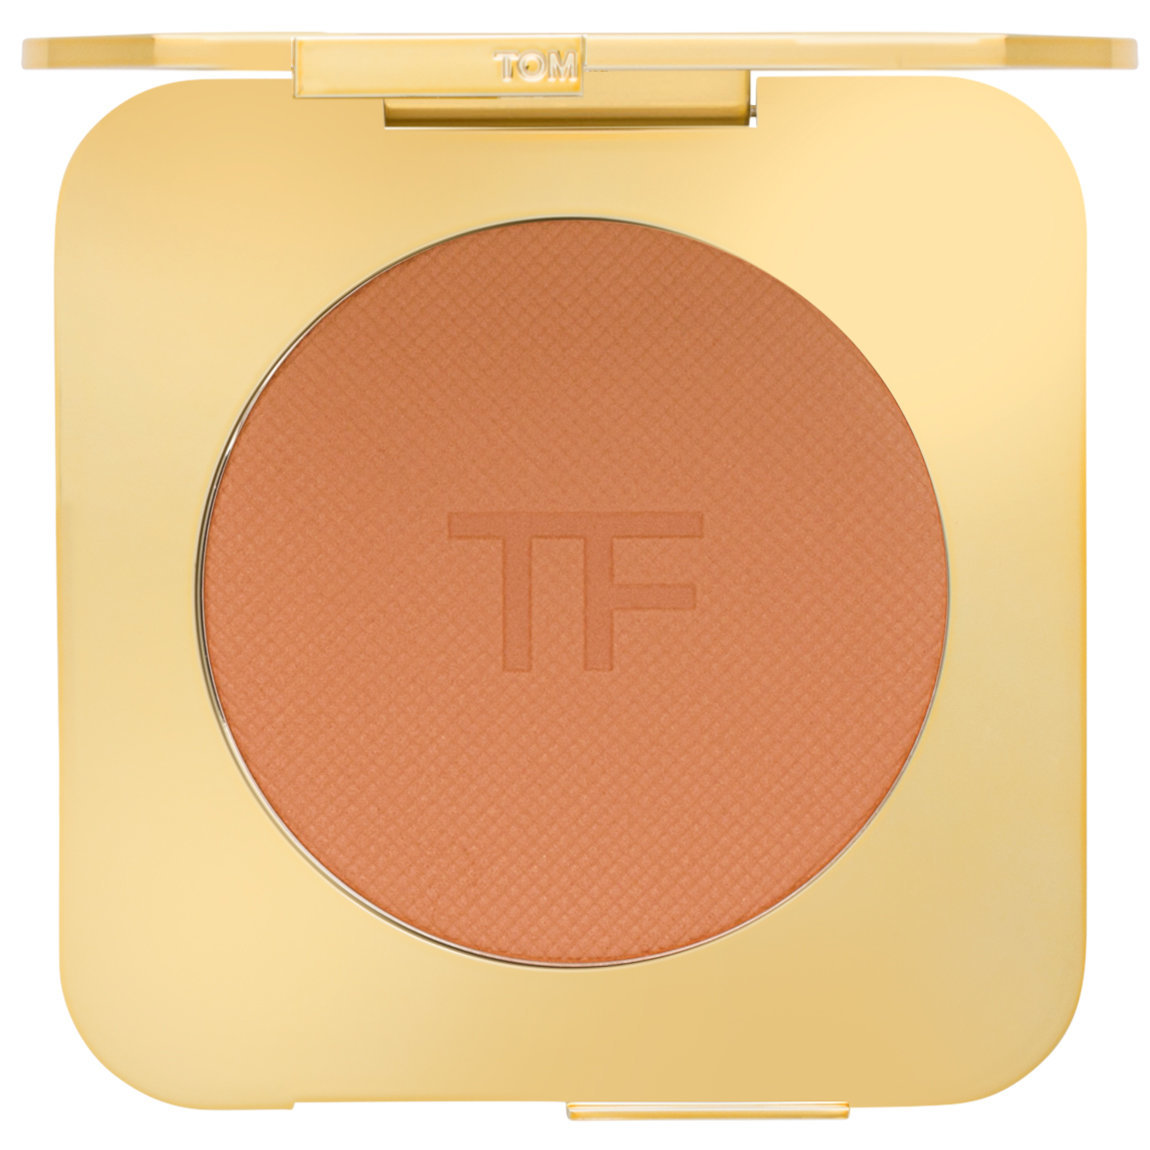 TOM FORD Soleil Glow Bronzer 01 Gold Dust (Large) product swatch.